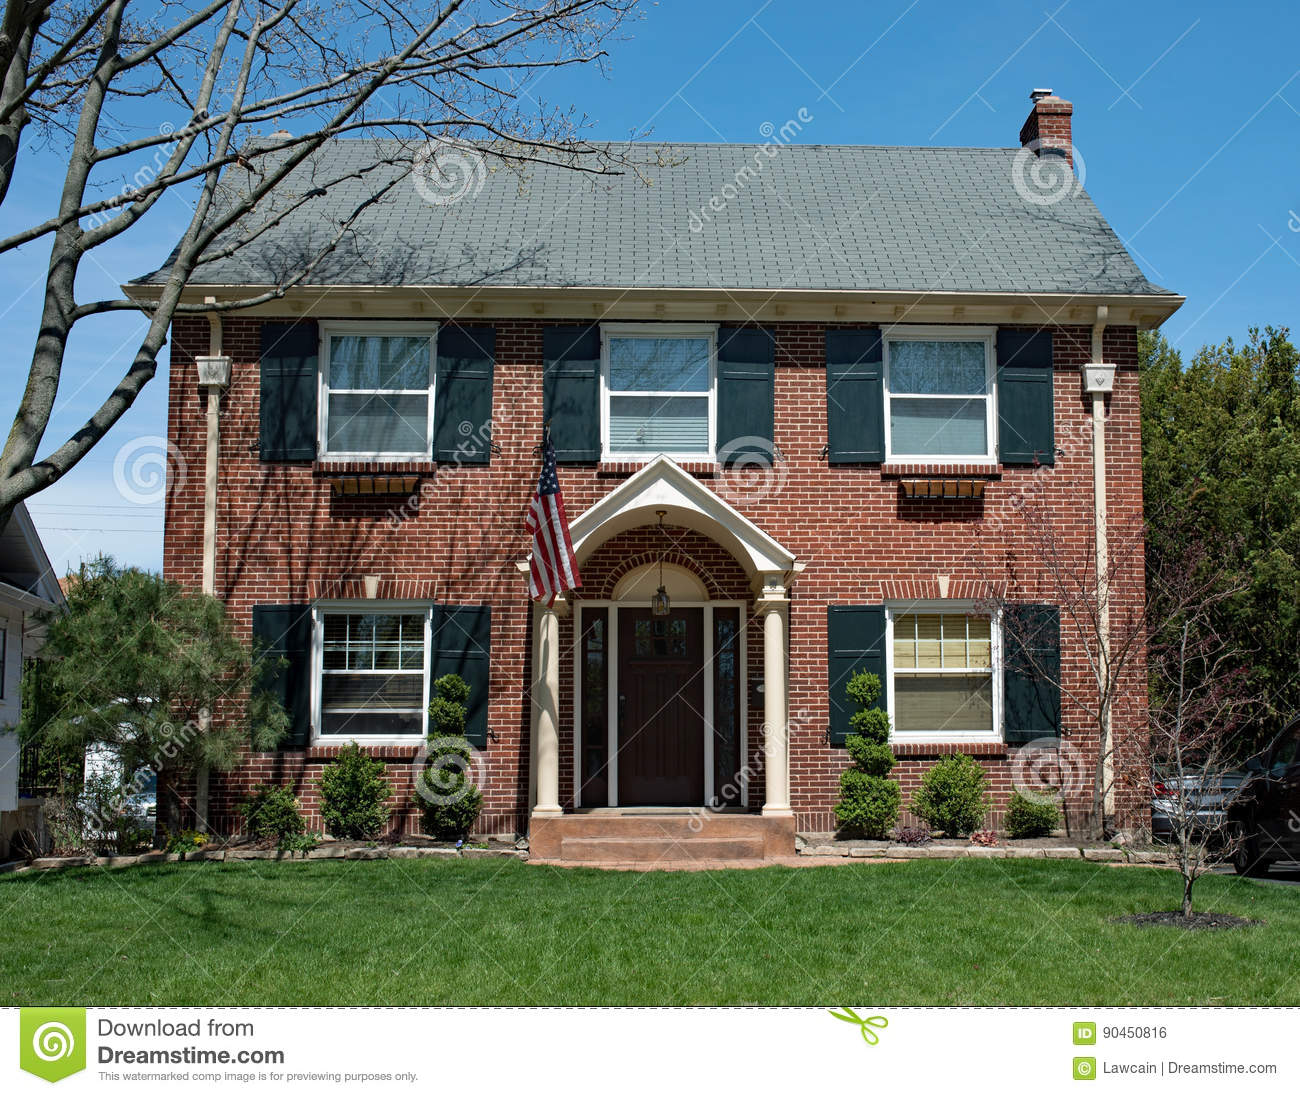 American Red Brick House In Springtime Stock Photo Image